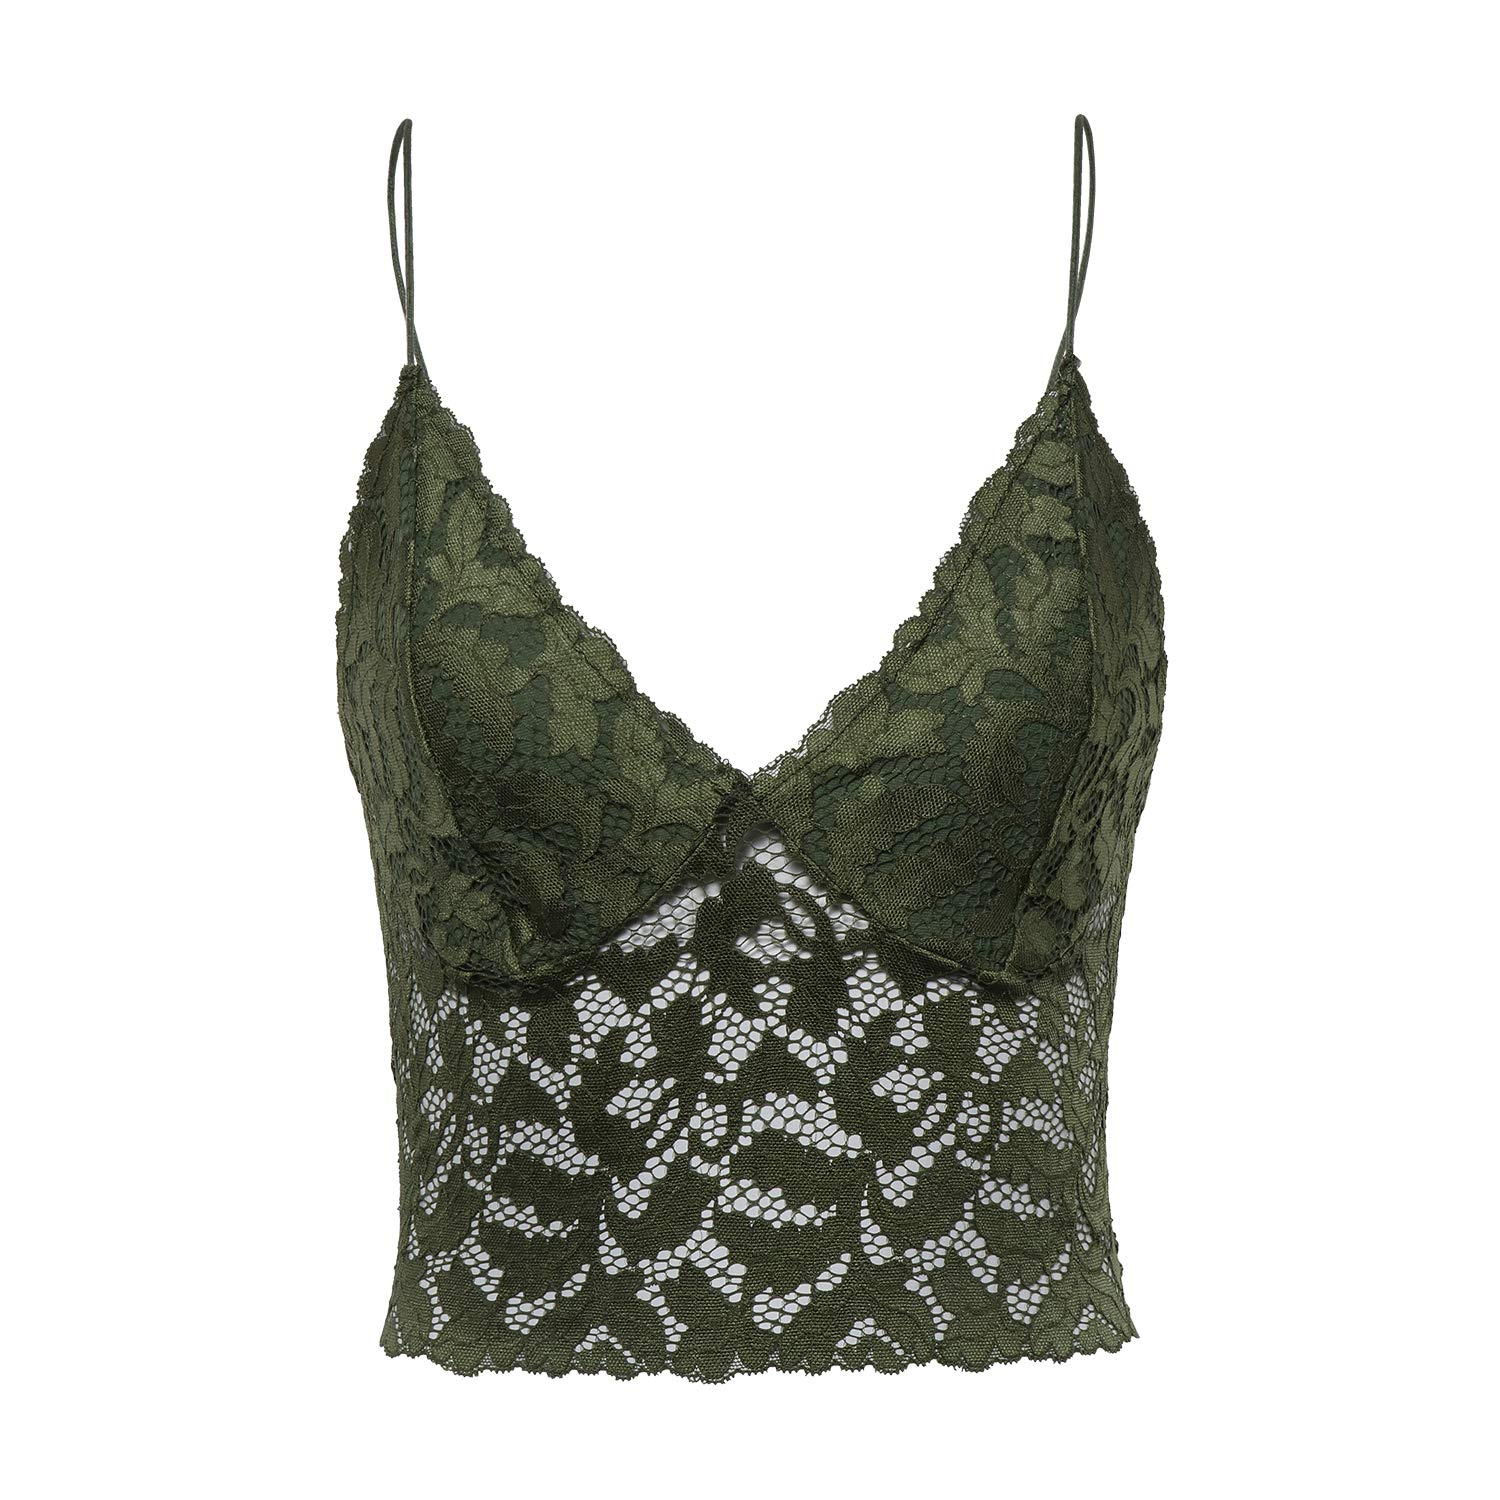 e03711418a3876 Triangle cups flower halter bralette perfect to lay under tees and shorts.  Sheer mesh lace feeling and decorative trimming as well as leaves patterned  ...